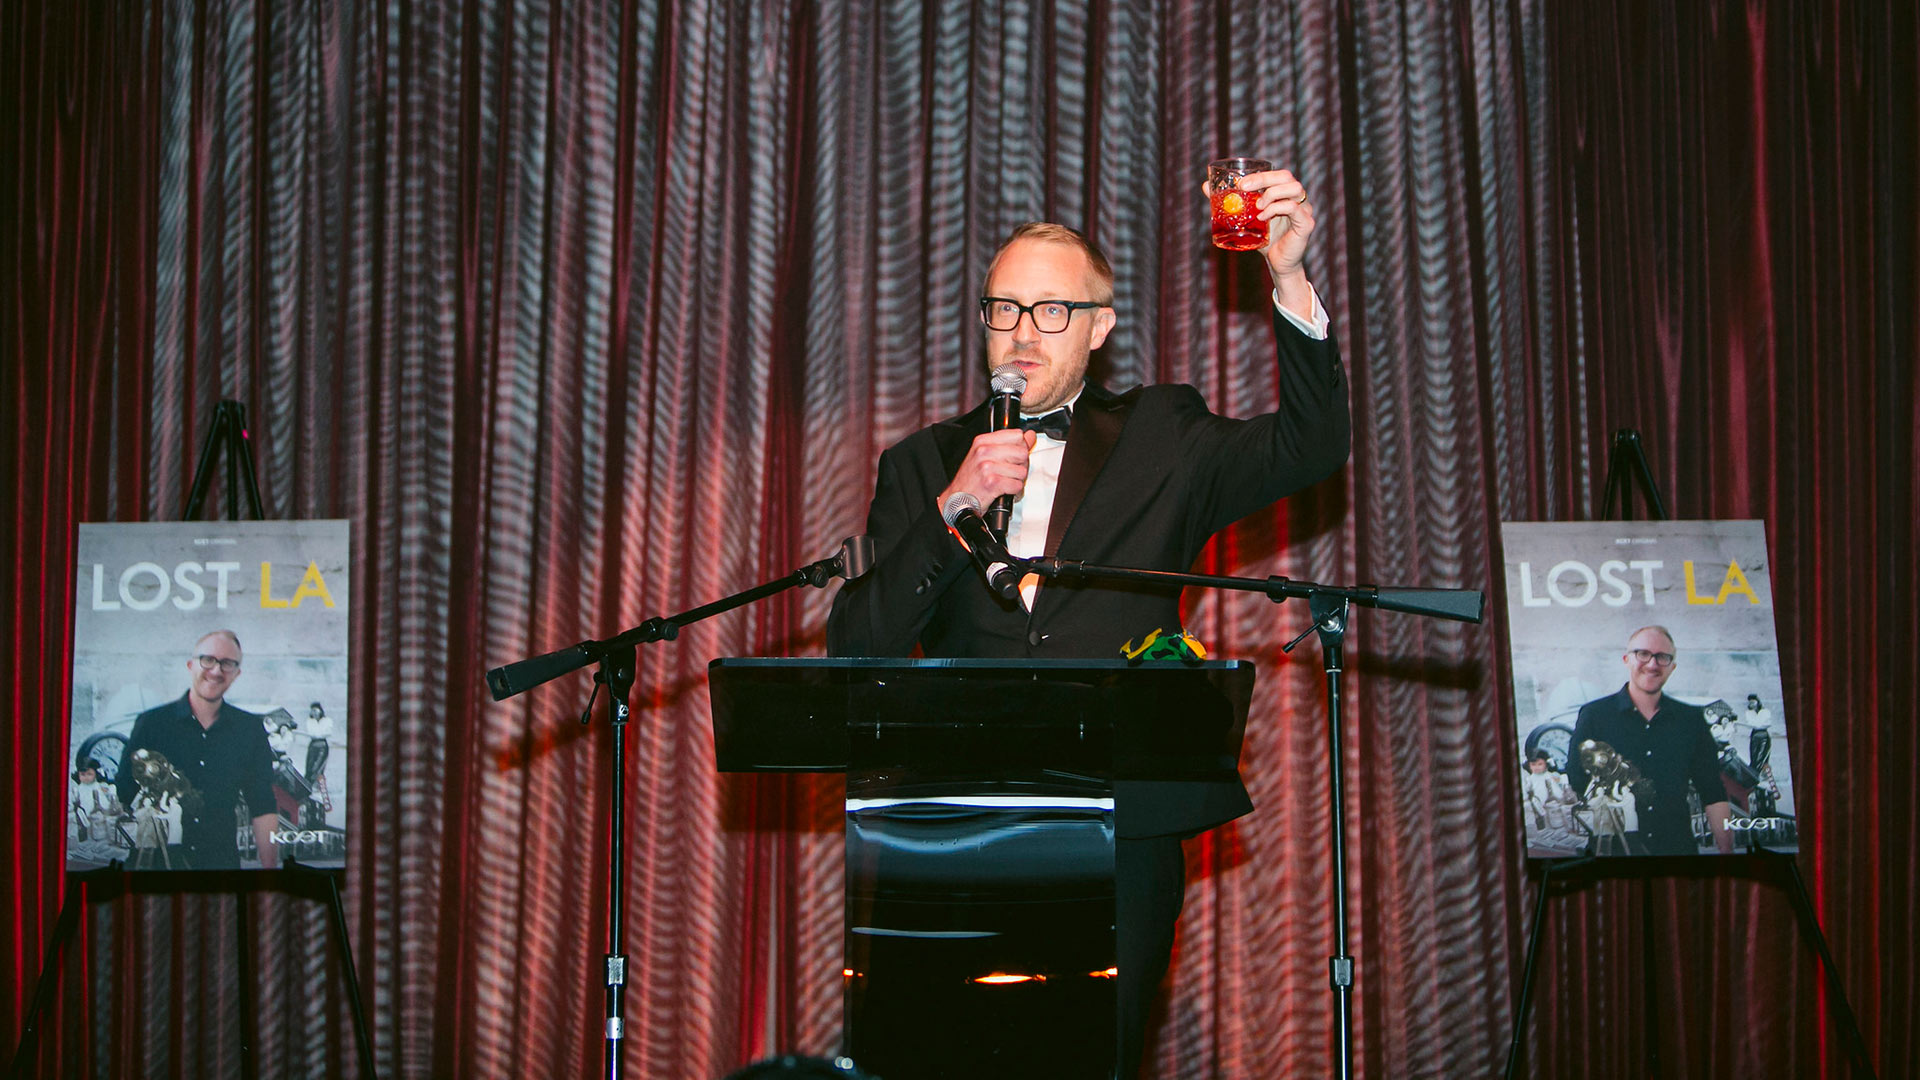 Public historian, writer and LOST LA Host, Nathan Masters of the USC Libraries toasts the crowd at KCET's LOST LA event at The Edison on October 22, 2019.